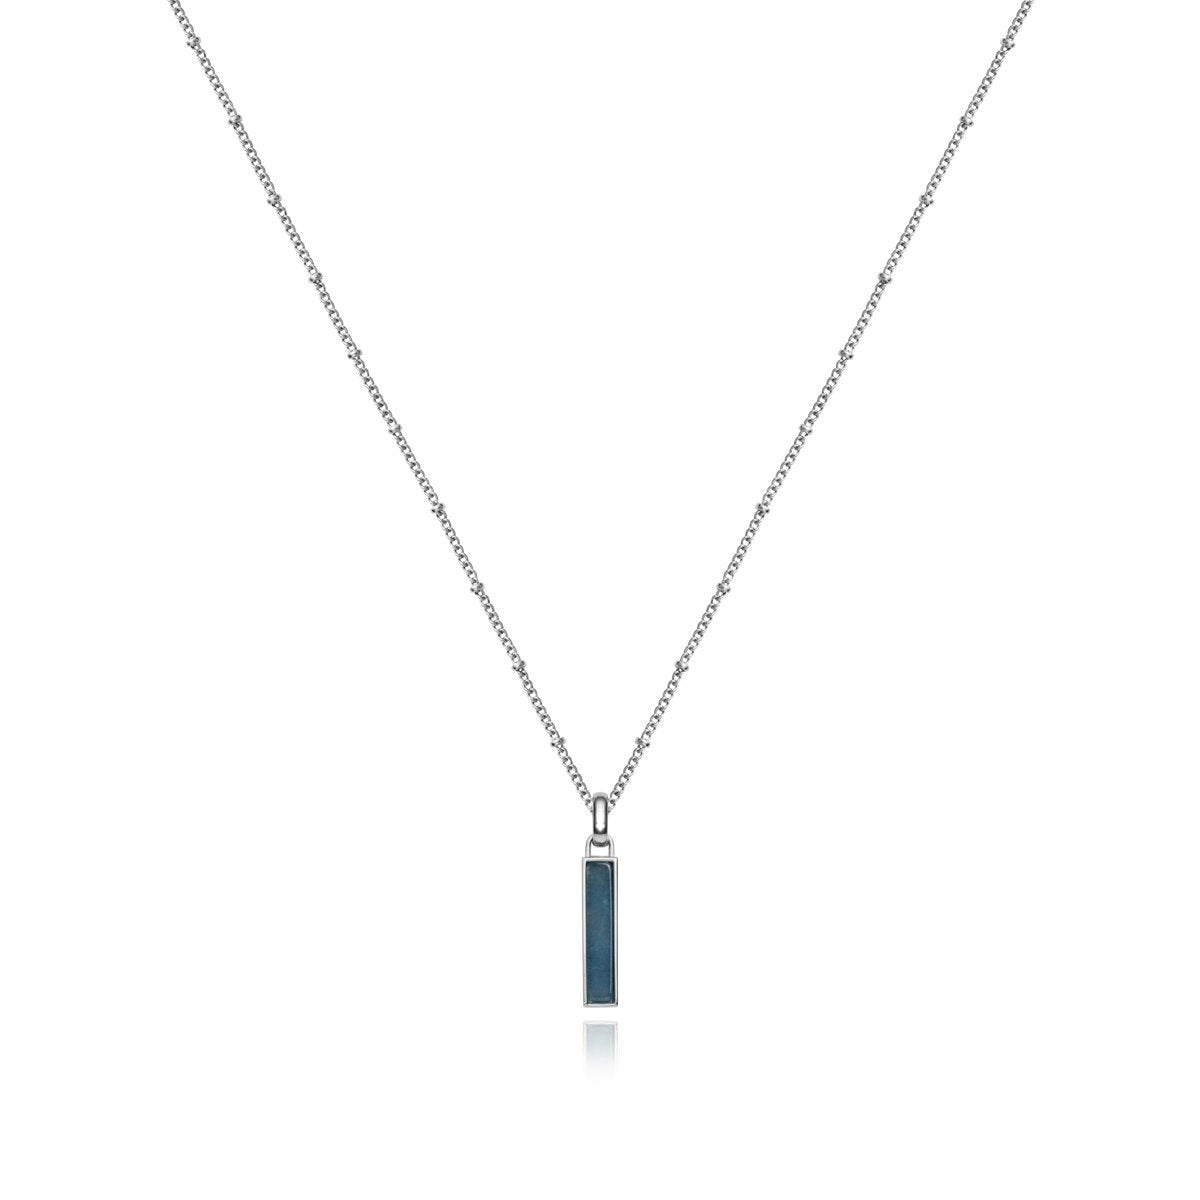 Small Lineare Bijou Charm Necklace (Kyanite/Silver)